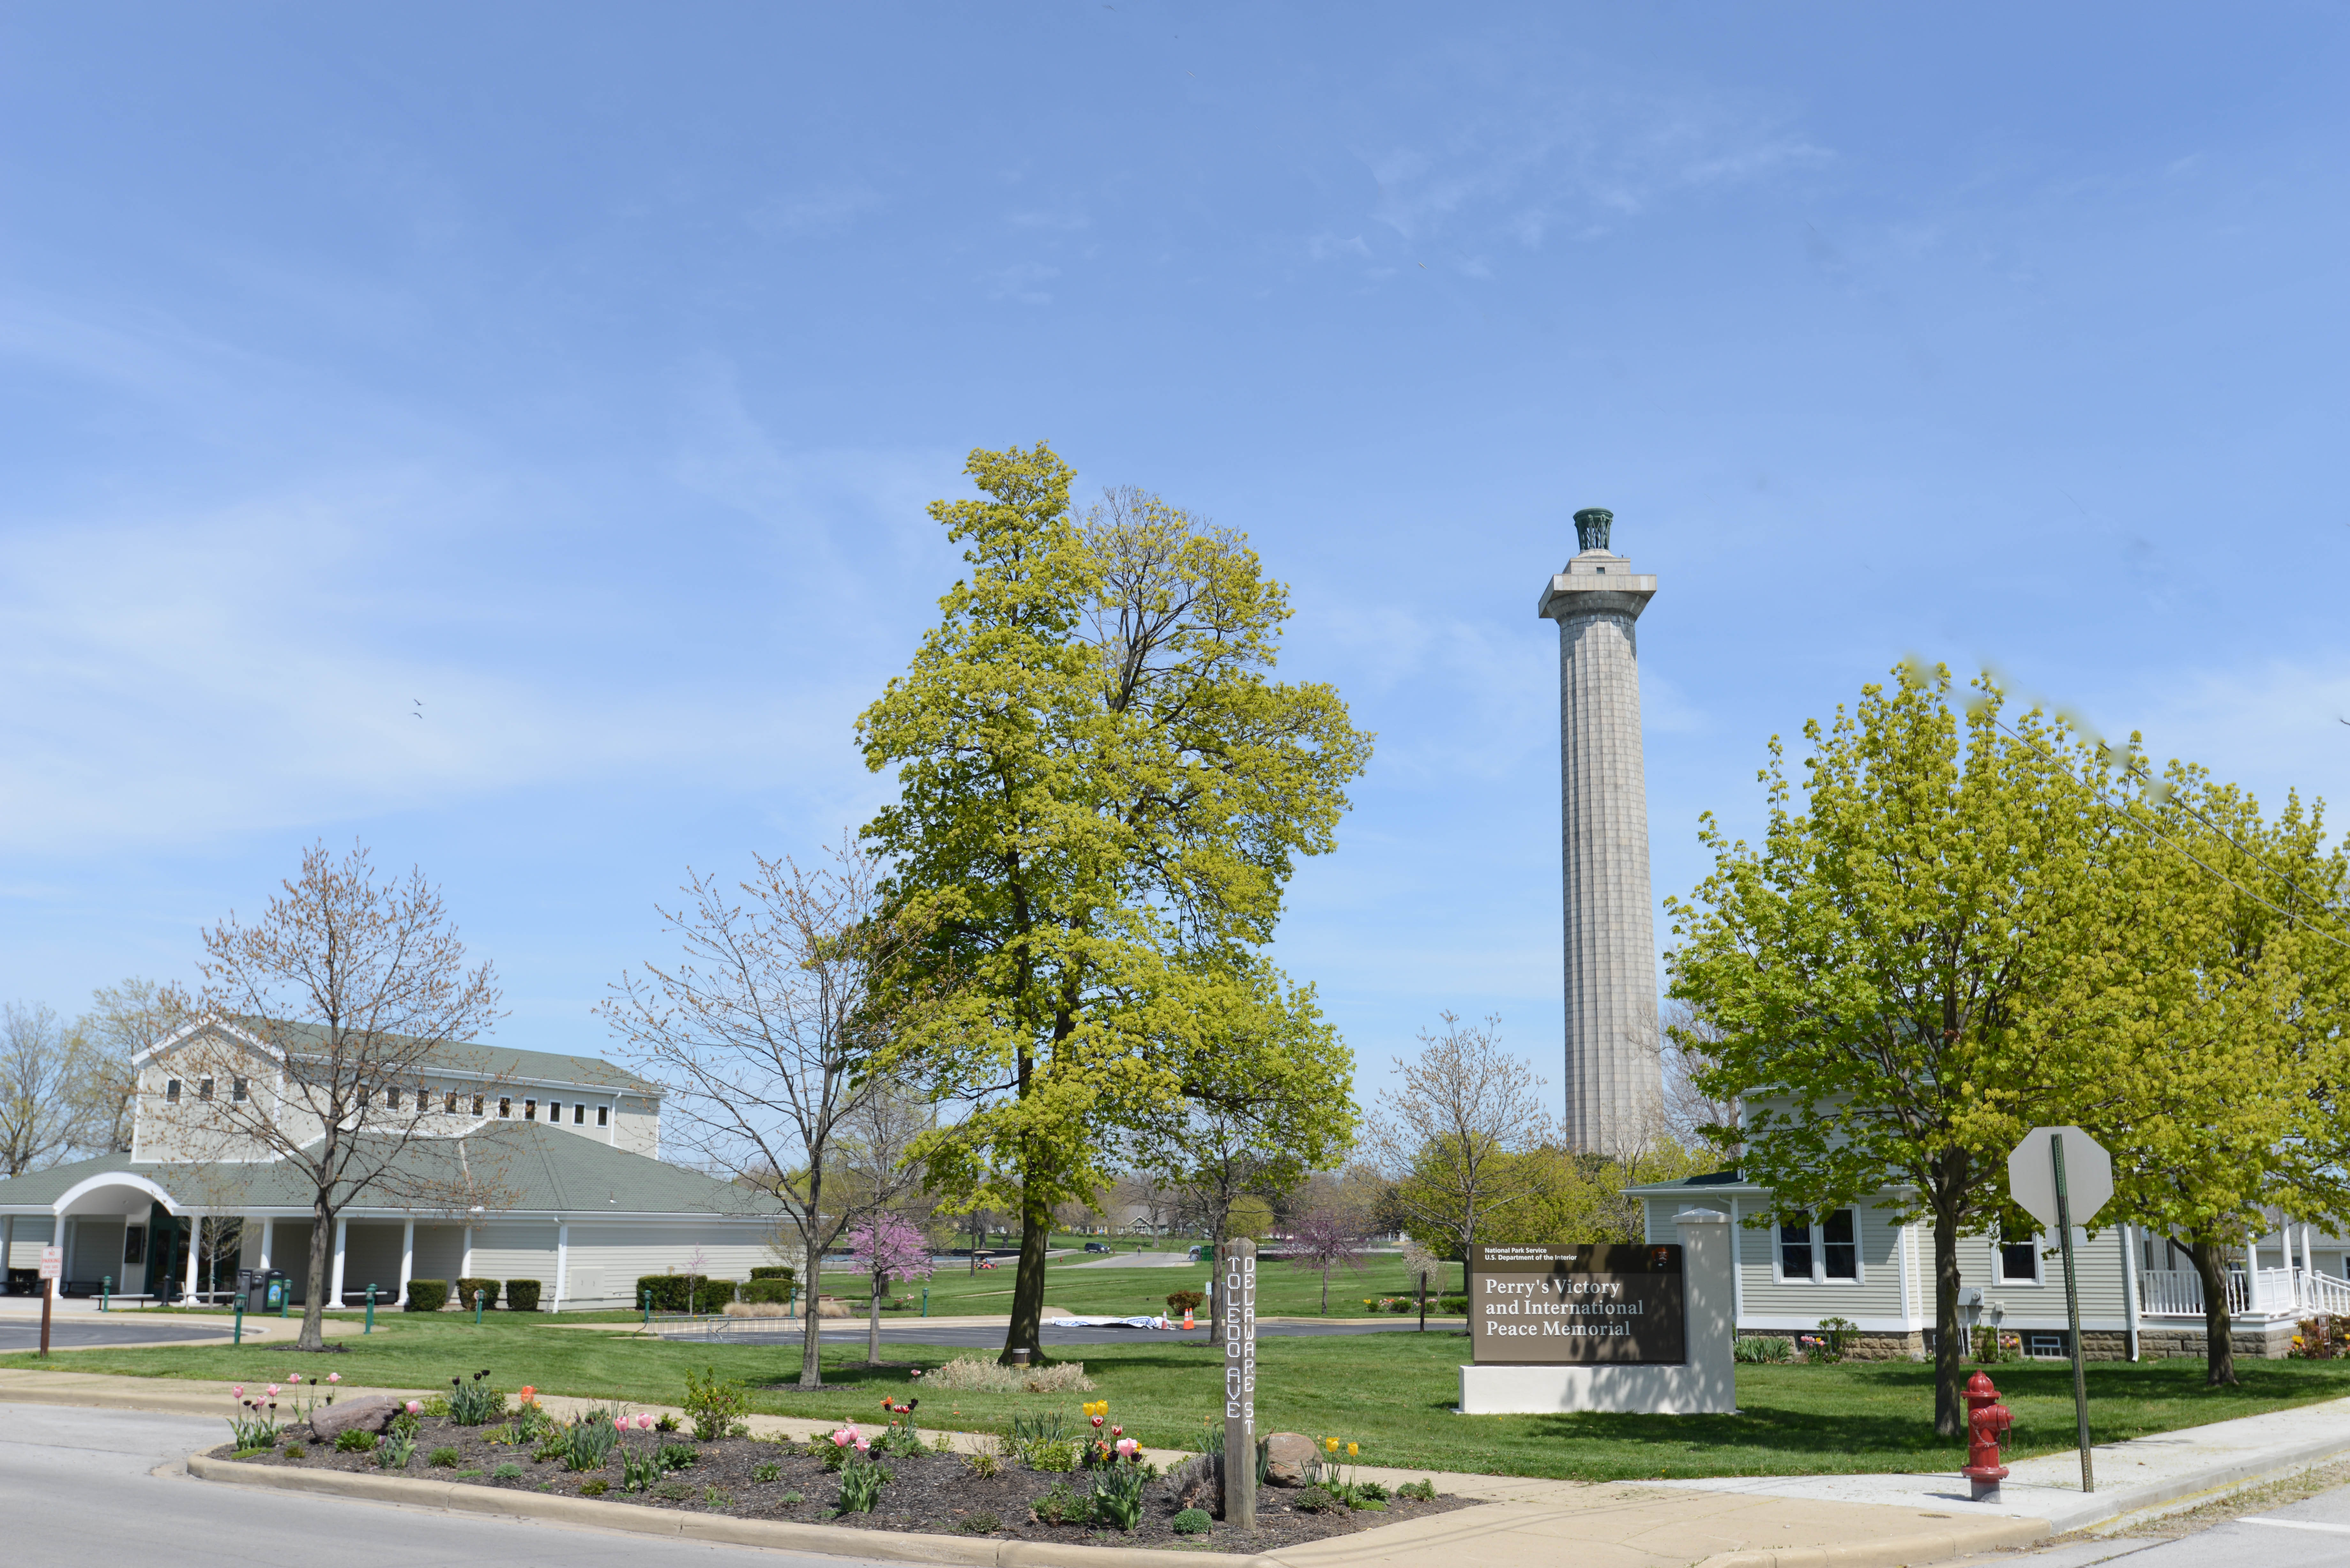 Memorial column in background, Visitor Center to the side, and park sign in foreground